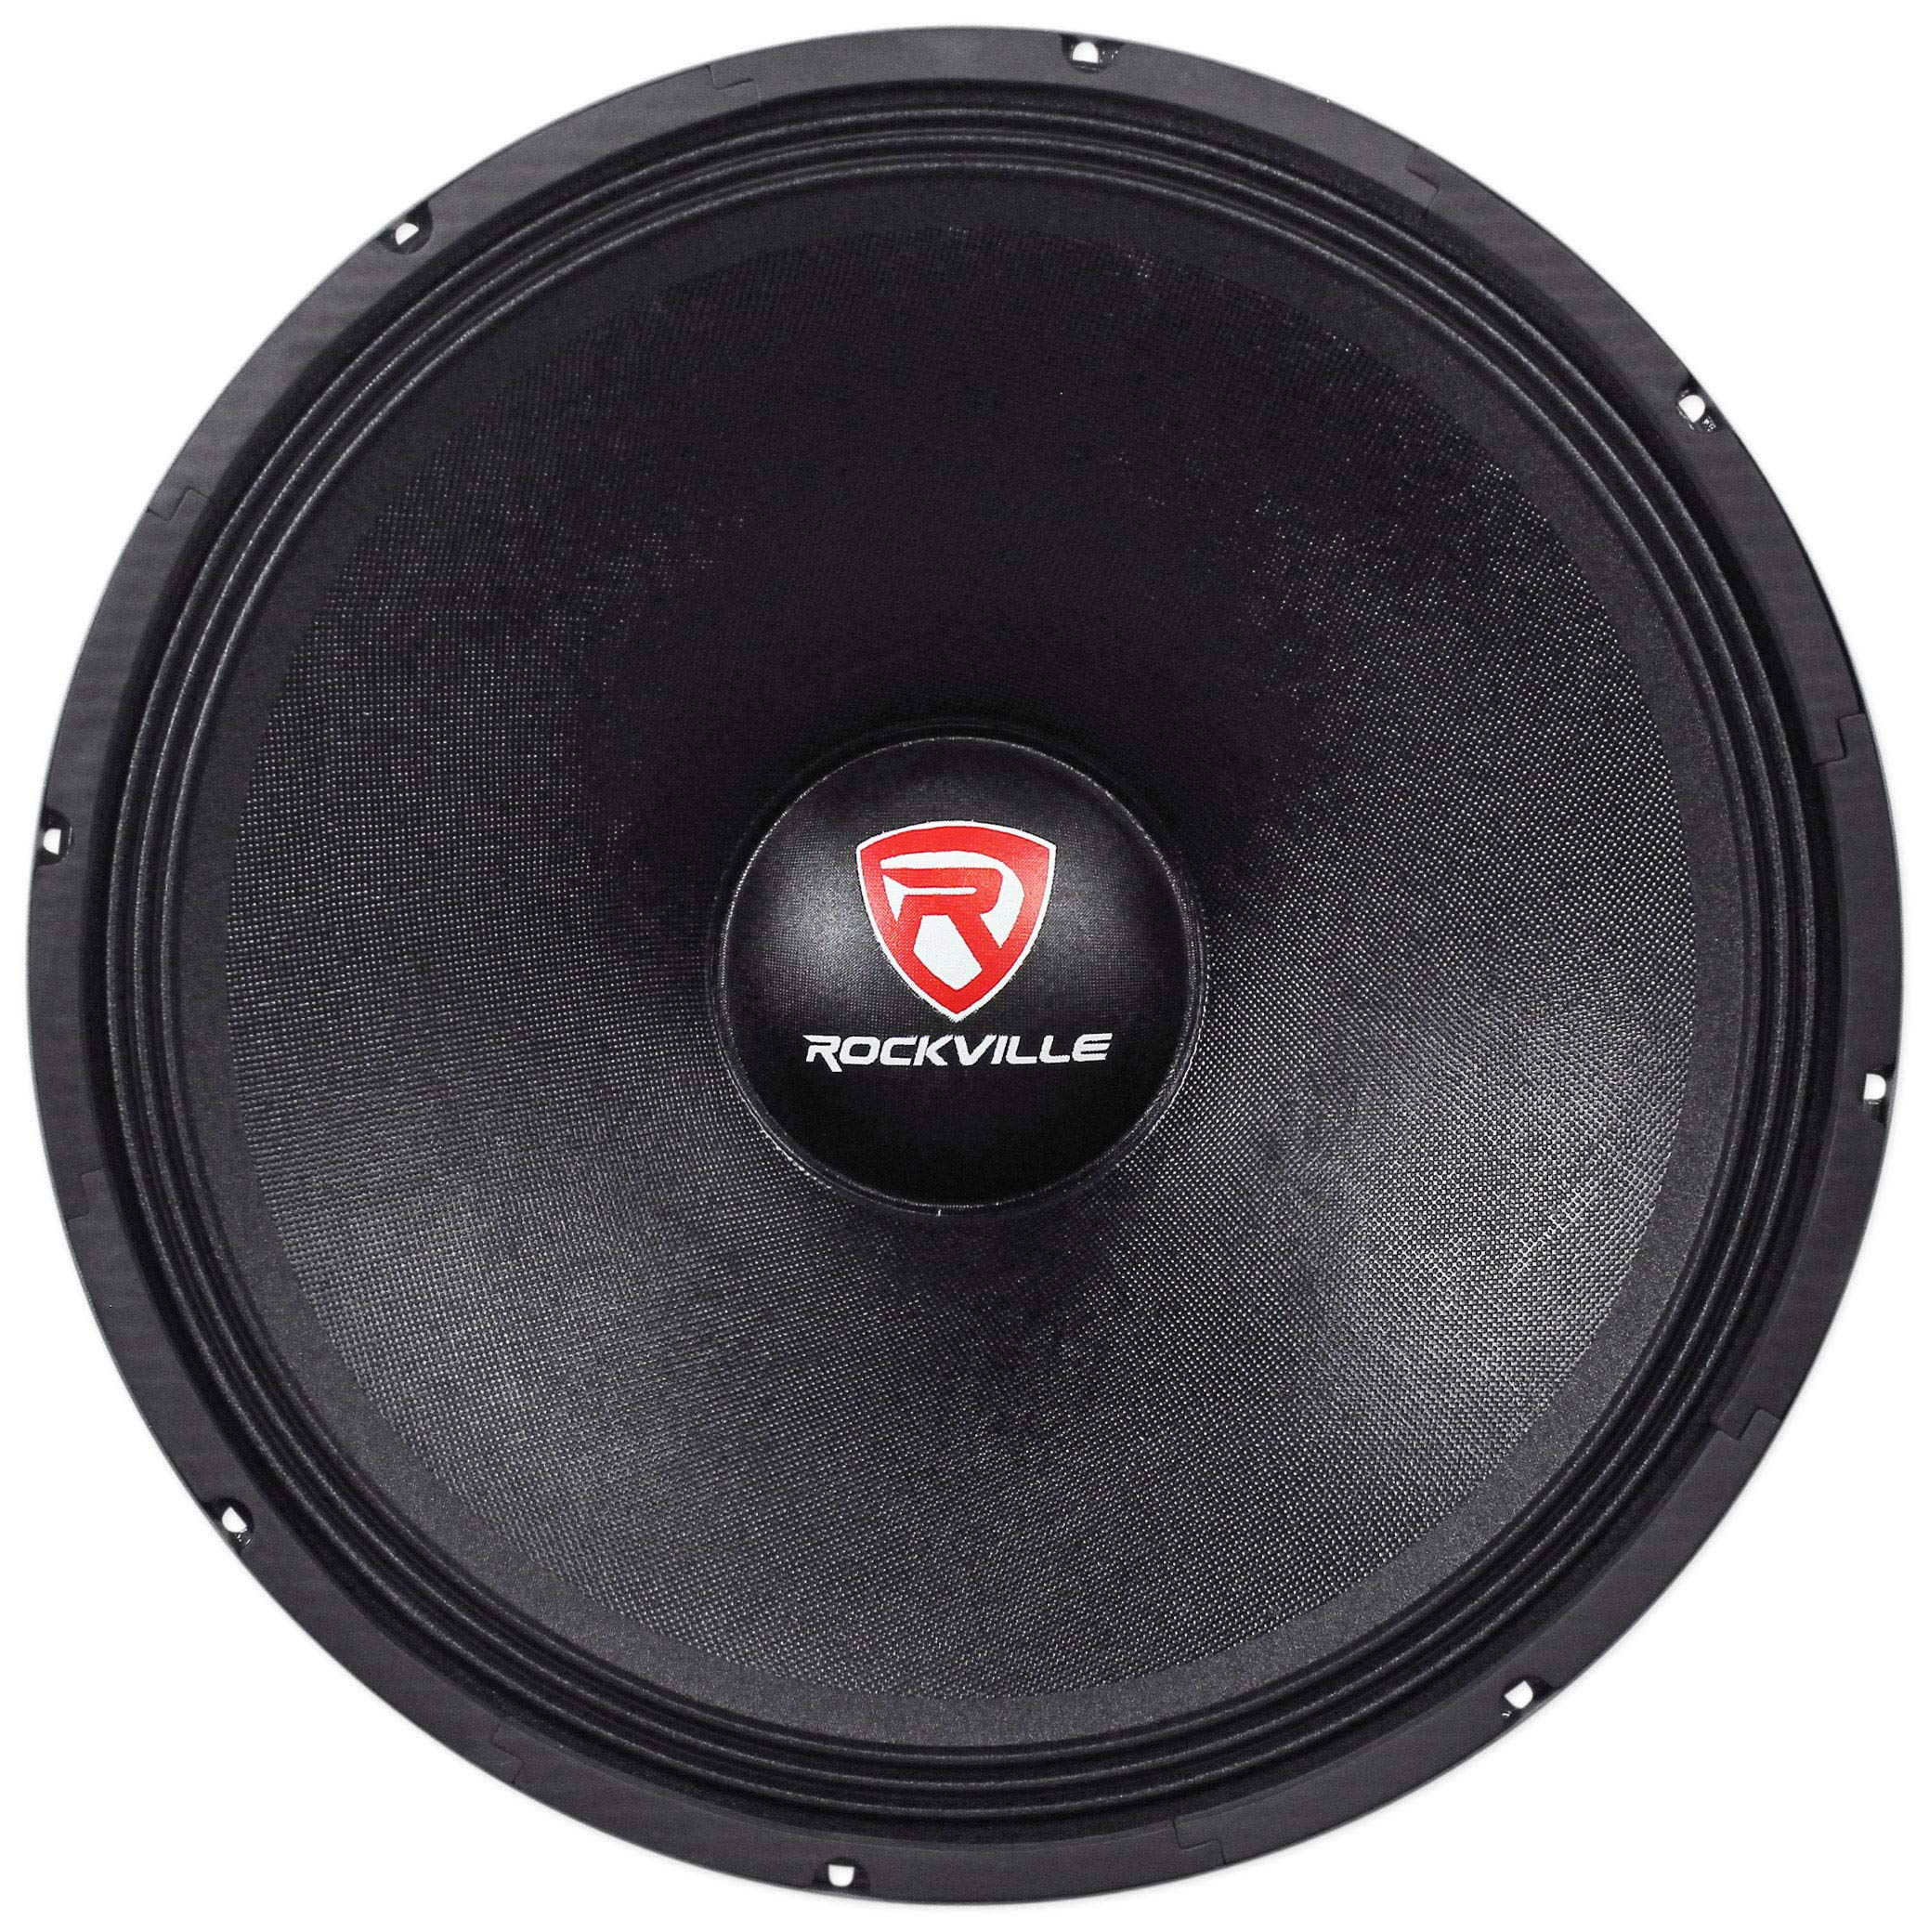 Rockville 18'' Replacement Sub Driver For Peavey PV 118 Subwoofer PV118